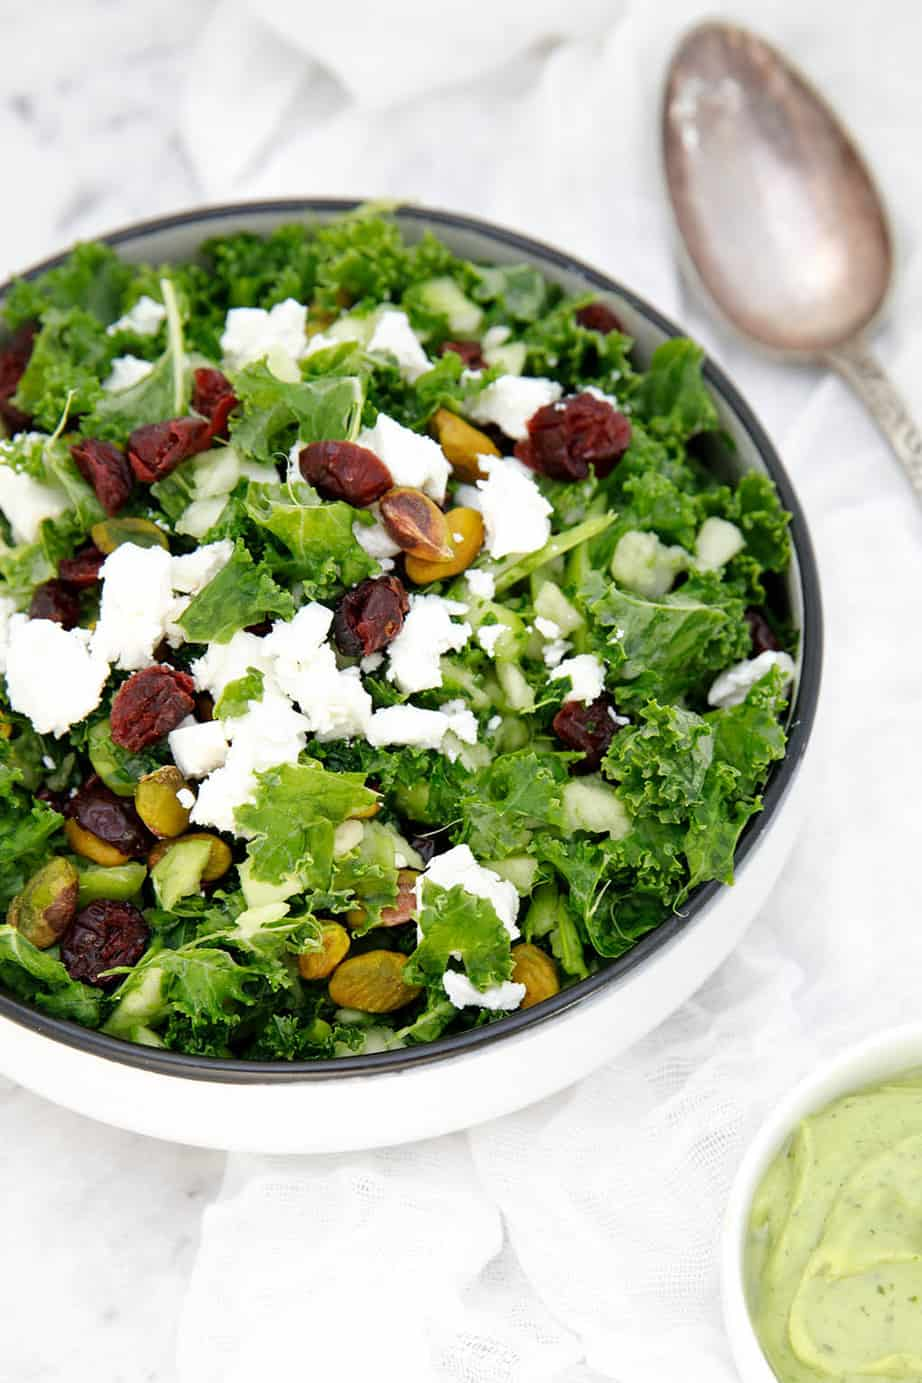 Potrait image of kale salad on a white cloth with cranberries and nuts